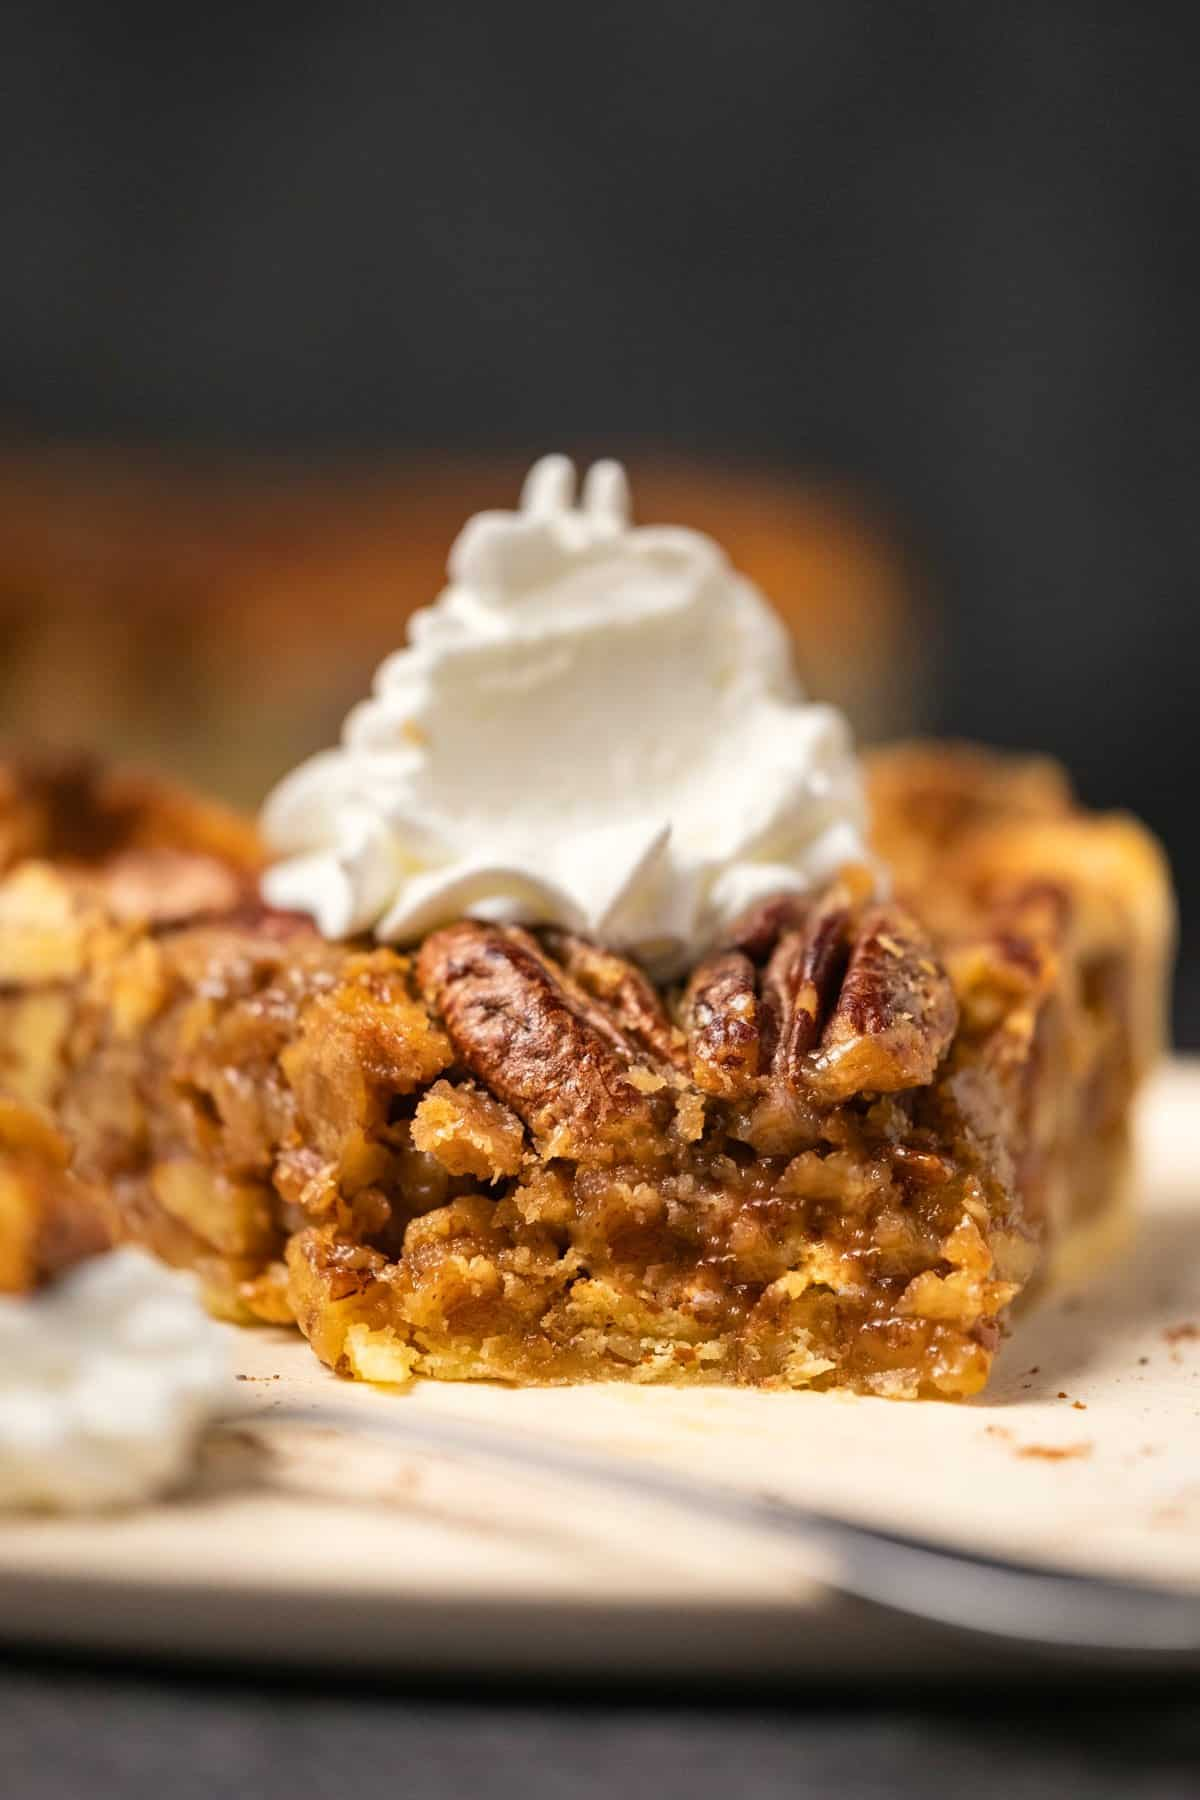 Slice of vegan pecan pie on a white plate with a cake fork.